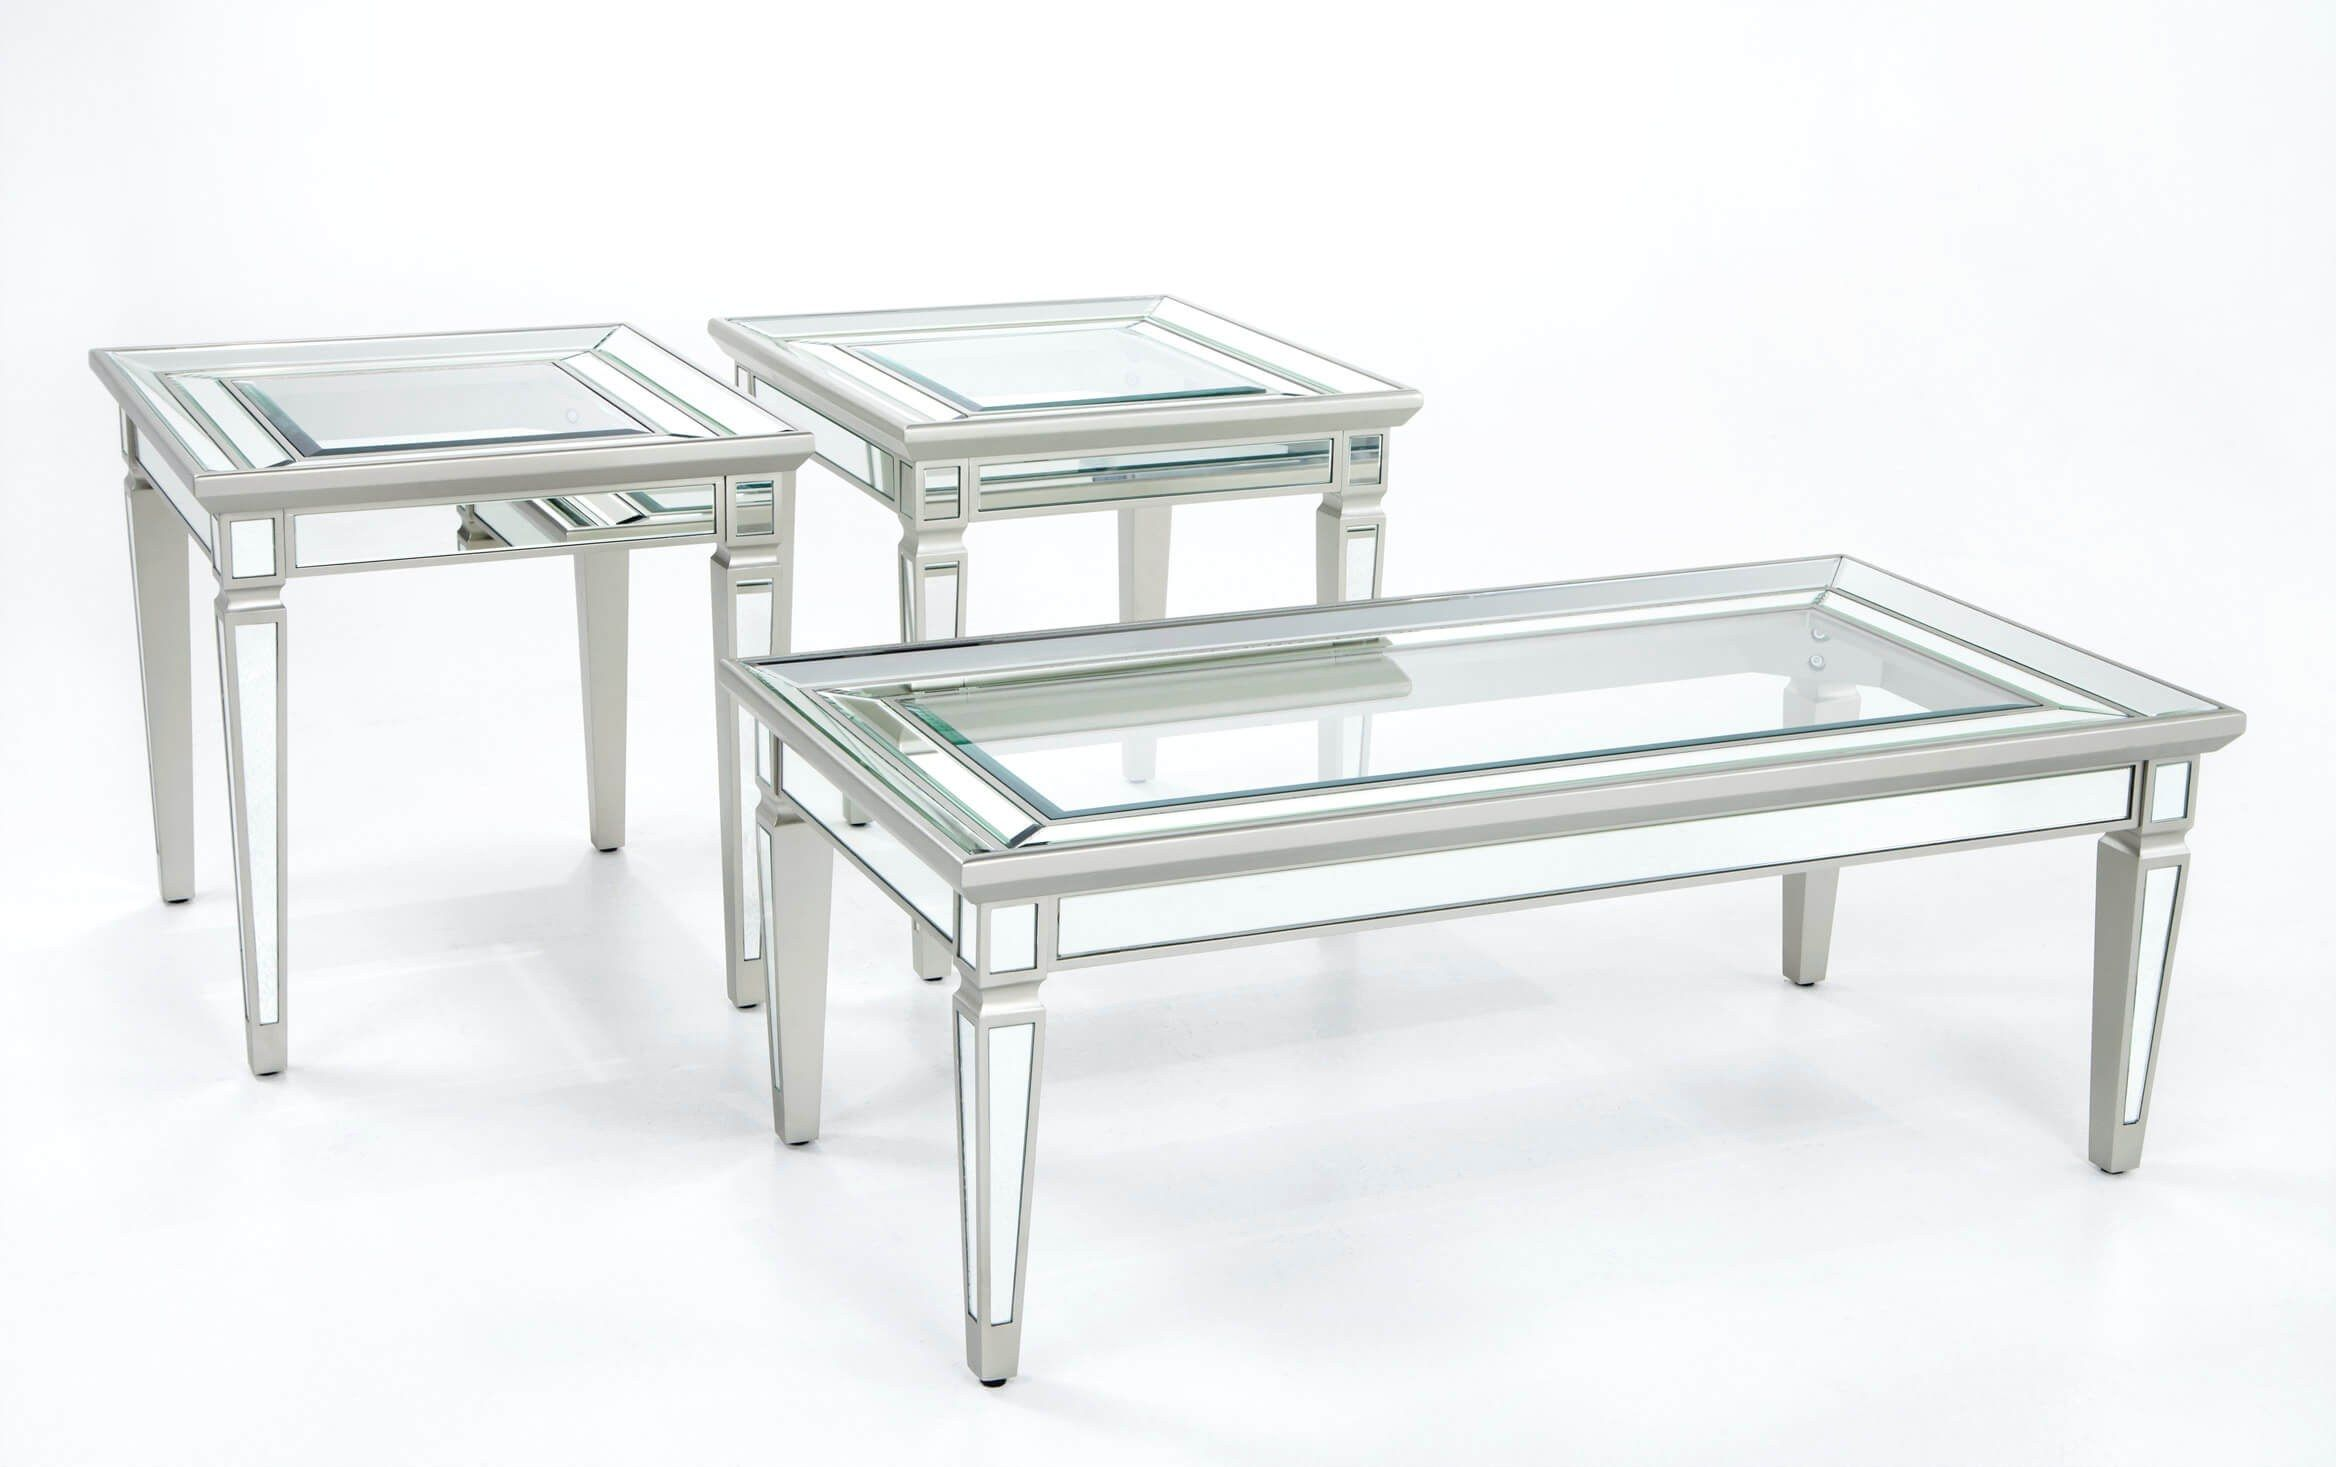 Reflection Coffee Table Set In 2021 Coffee Table Setting Coffee Table Decor Living Room Table Decor Living Room [ 1467 x 2336 Pixel ]